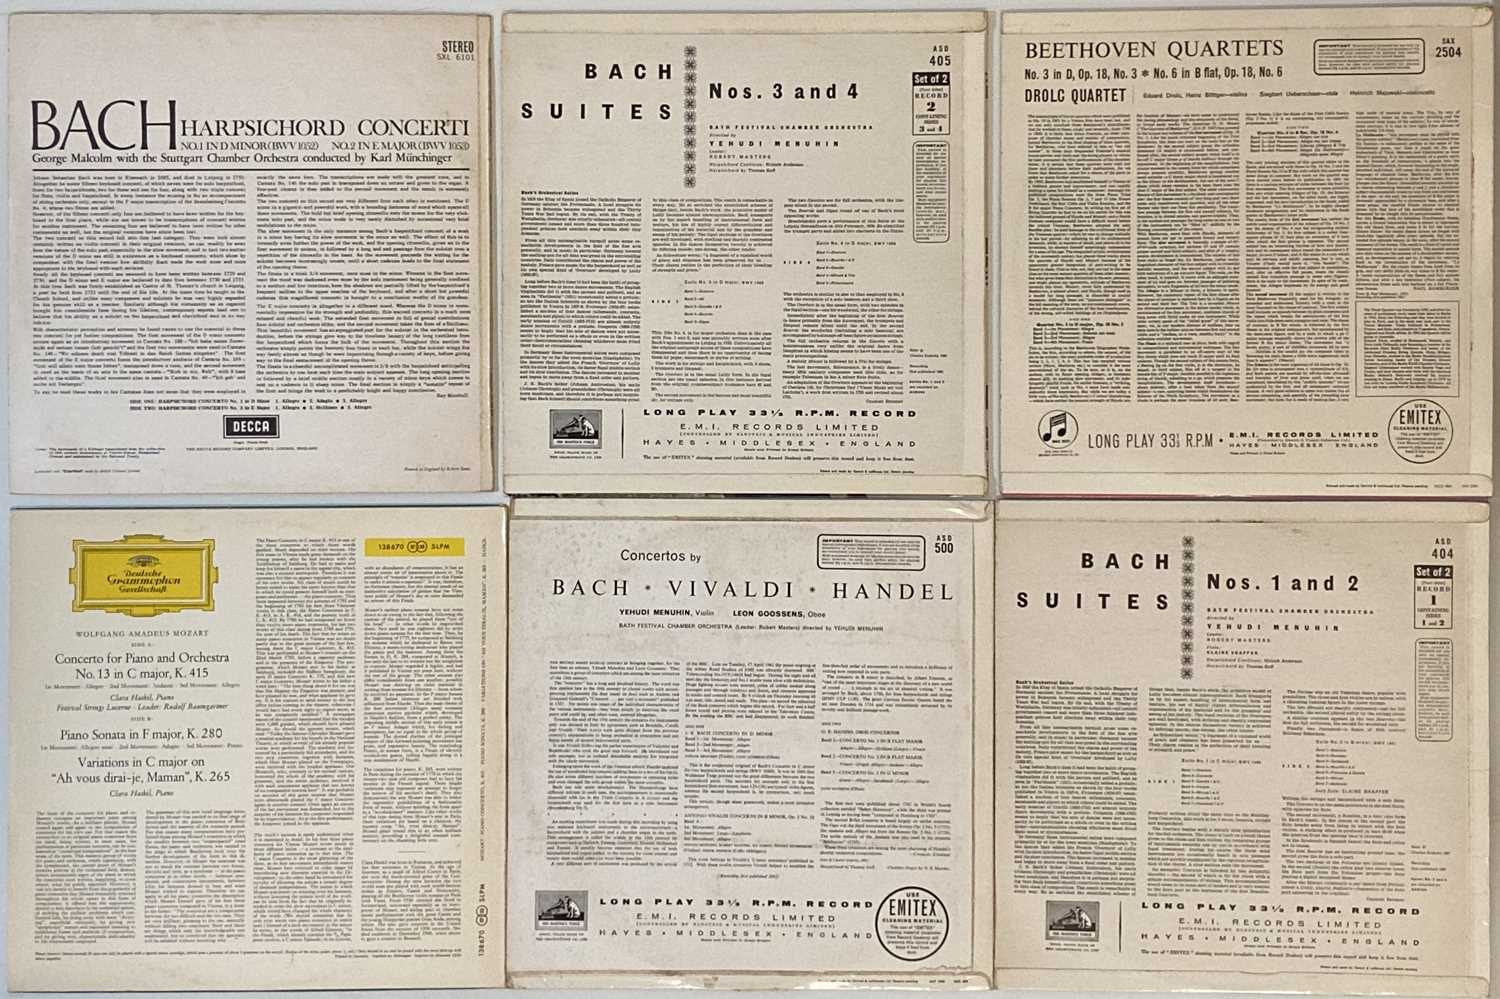 CLASSICAL - STEREO LP RARITIES - Image 2 of 2